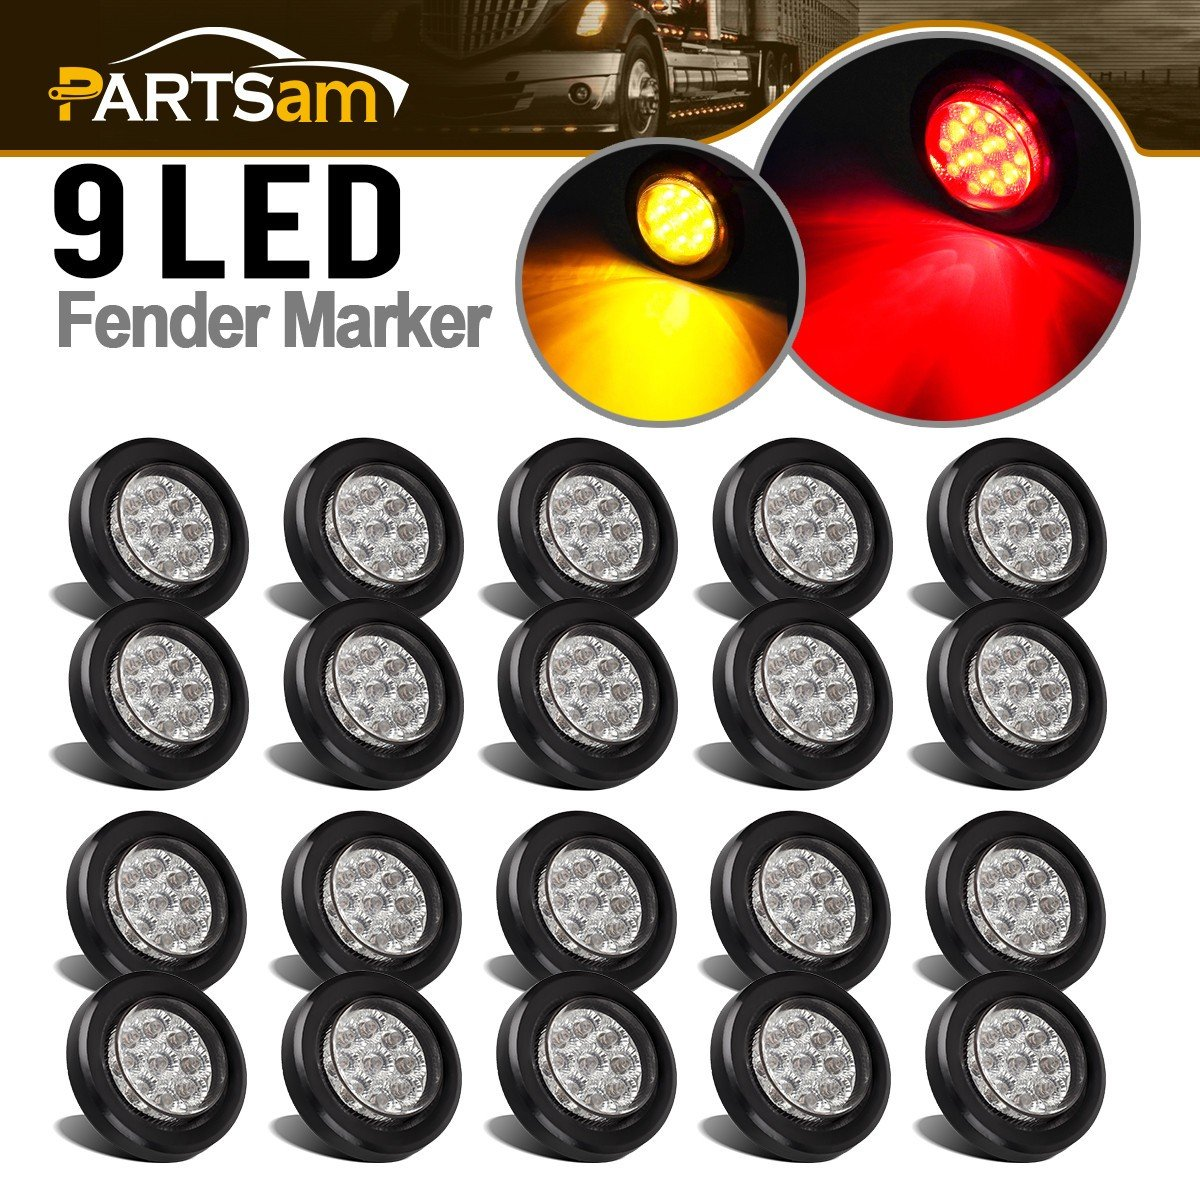 Partsam 2'' Round Led Marker Lights 9LED Reflectors Amber/Red, Kits, Grommet/Pigtails, Sealed Trailer Led Clearance and Side Marker Lights Multi faceted, 10 Amber + 10 Red (pack of 20) by Partsam